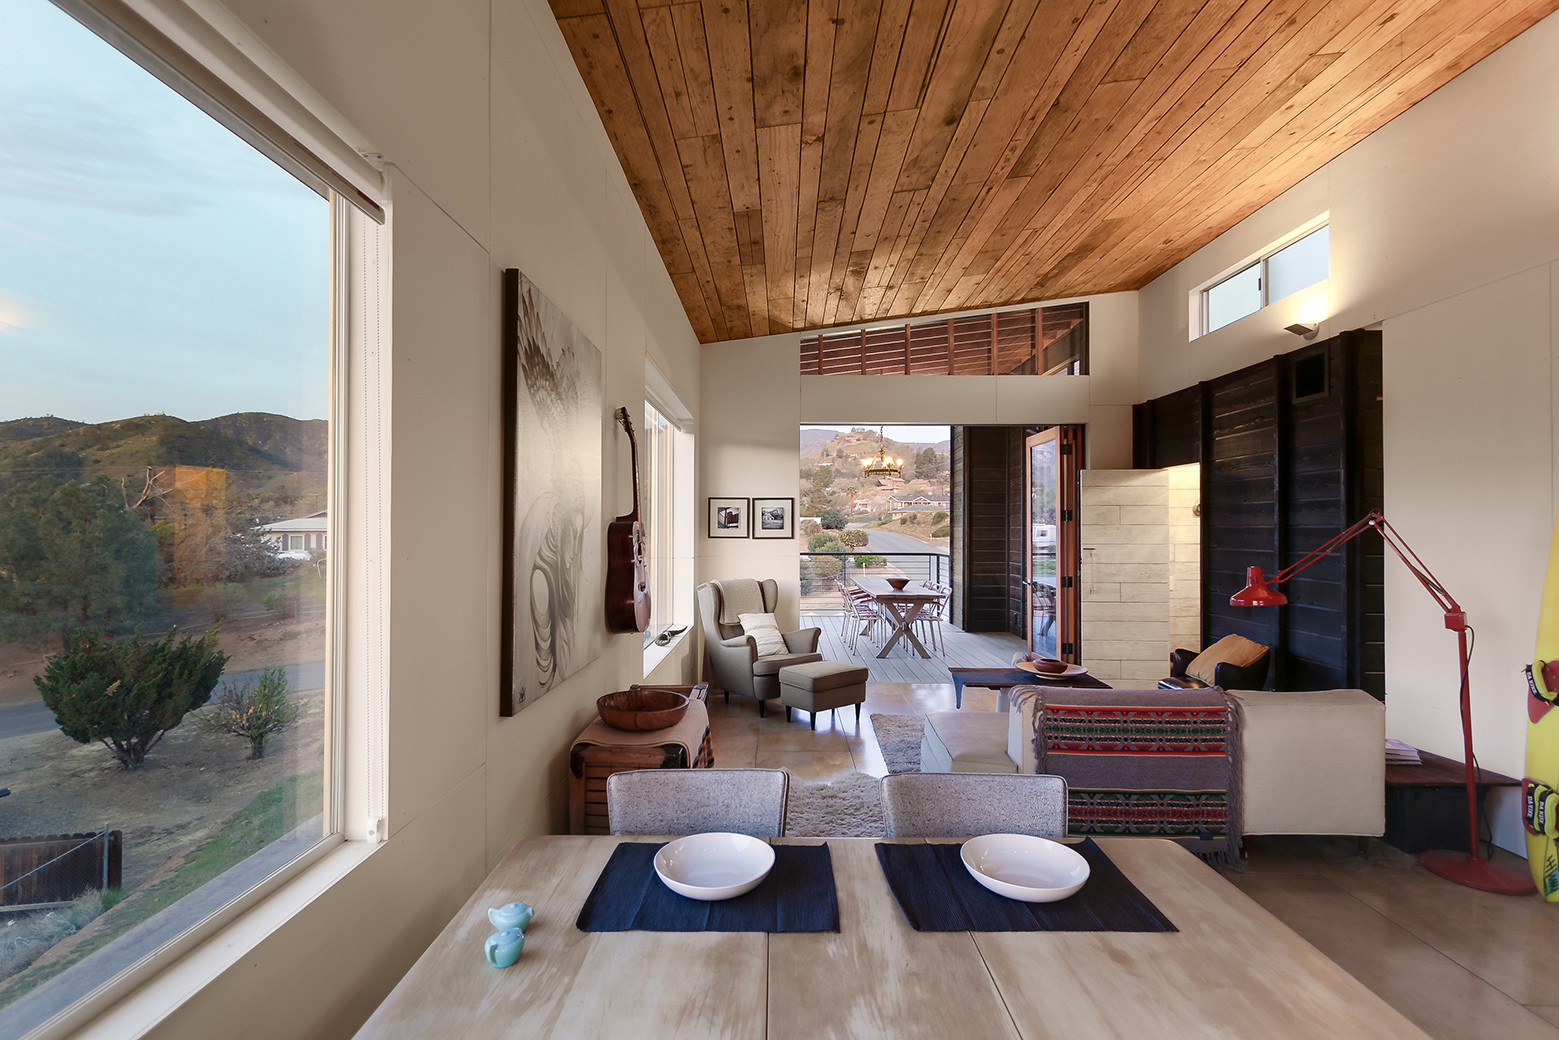 Modern Cabin Interior Design Highly Crafted Modern Desert Cabin  Idesignarch  Interior Design